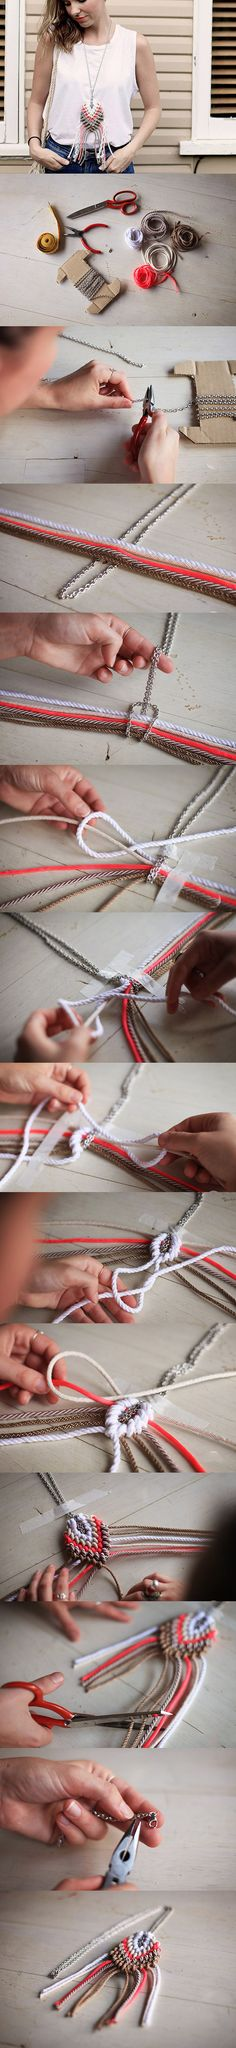 Jewelry Chains - Tutorial - I wish there were words to this tutorial instead of just pictures.  I guess I'll just try to figure it out.  I wonder if it would work with tshirt yarn...